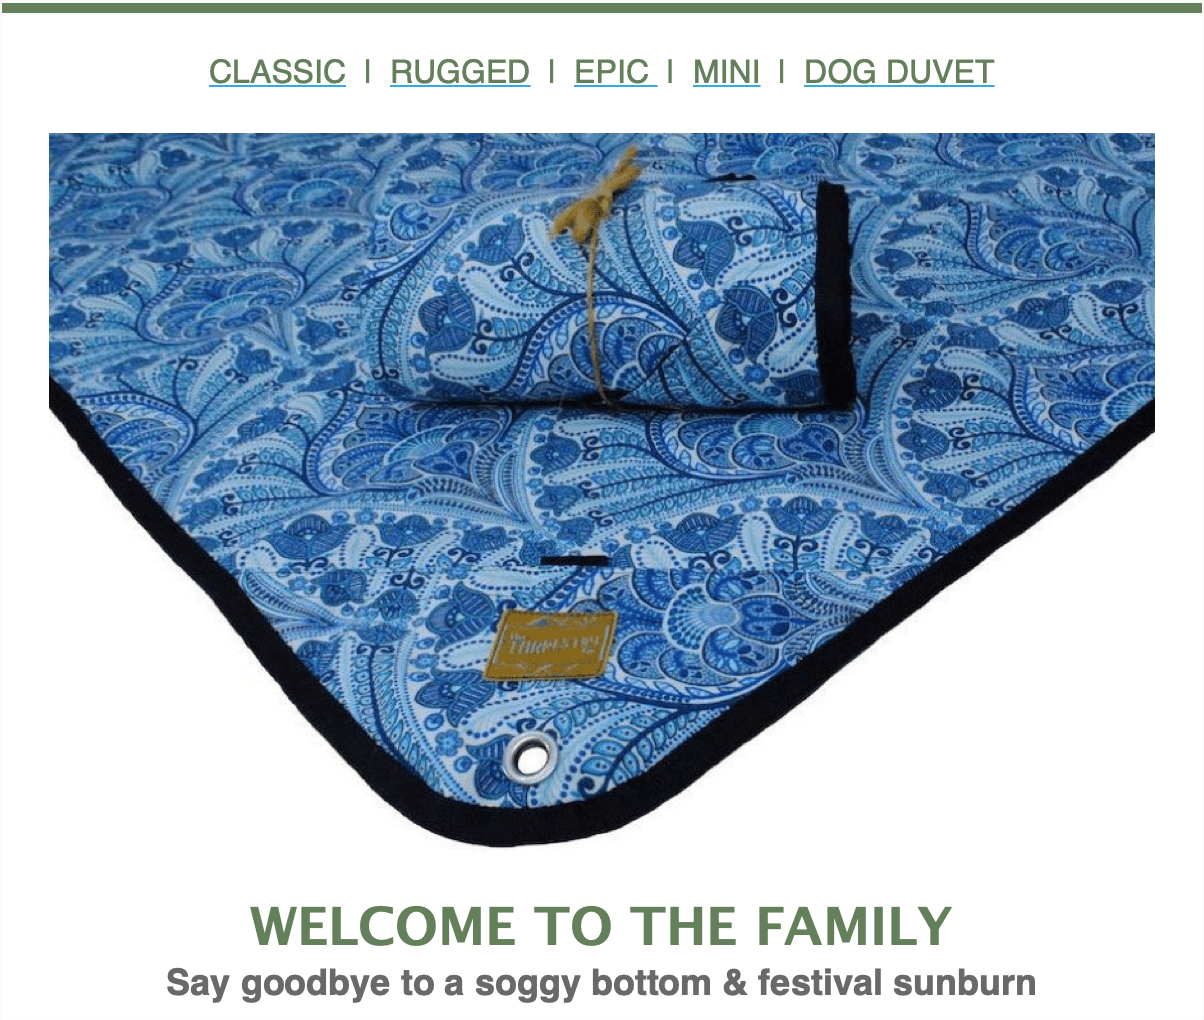 Tarpestry newsletter, Welcome to the Family, picture of blue Tarpestry